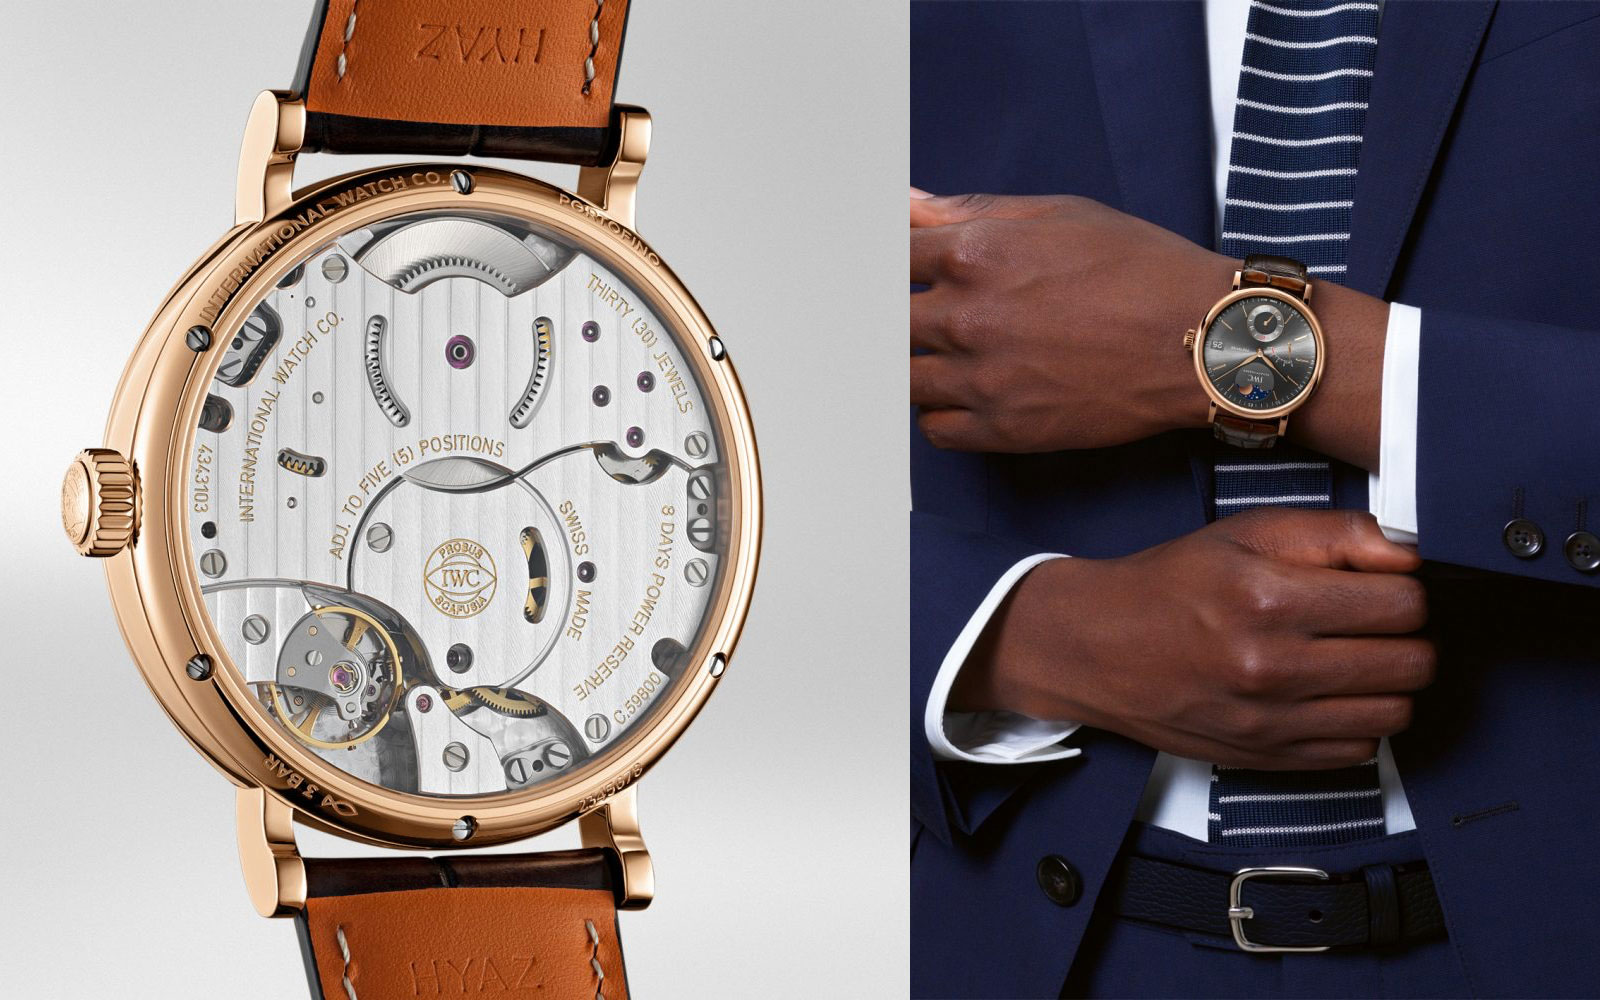 PORTOFINO HAND-WOUND MOON PHASE IW516403 - feature